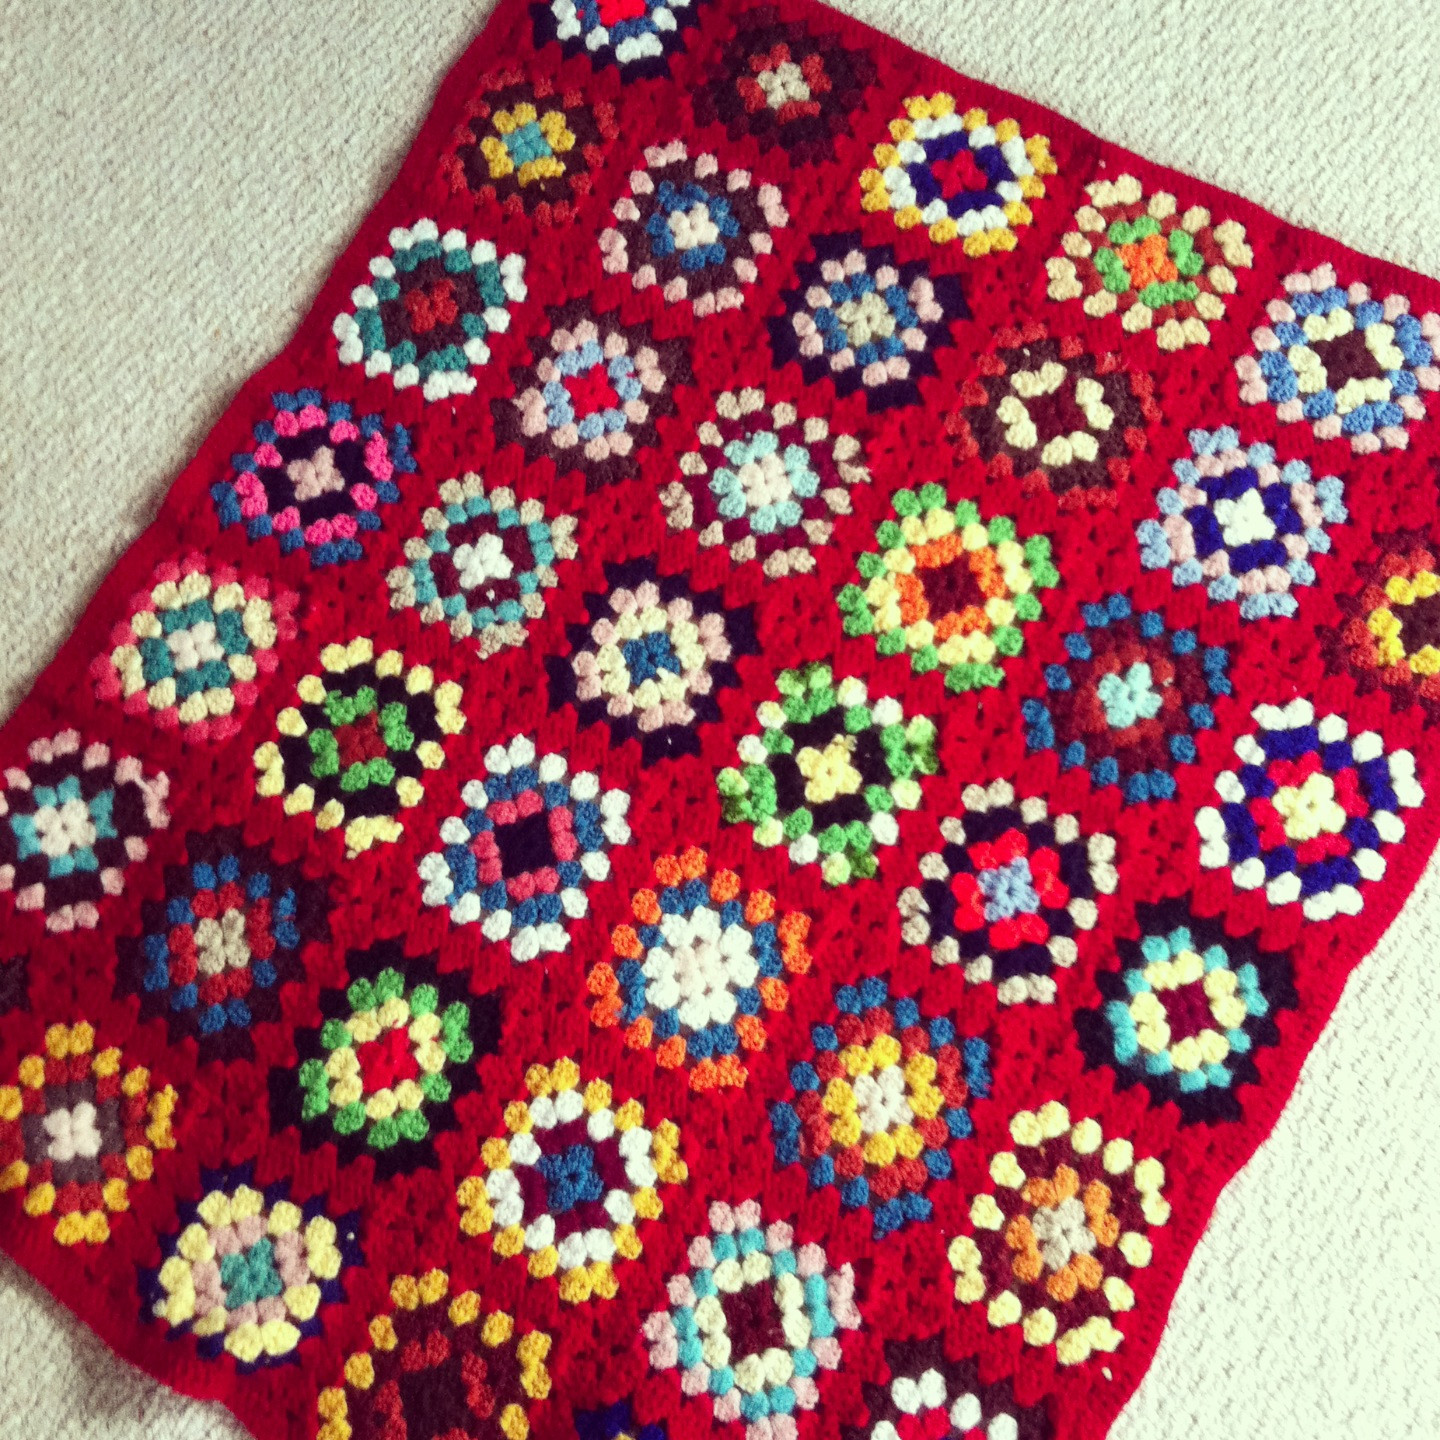 Crochet Granny Blanket Luxury Vintage Finds Granny Square Crochet Afghans Hello Of Amazing 47 Ideas Crochet Granny Blanket